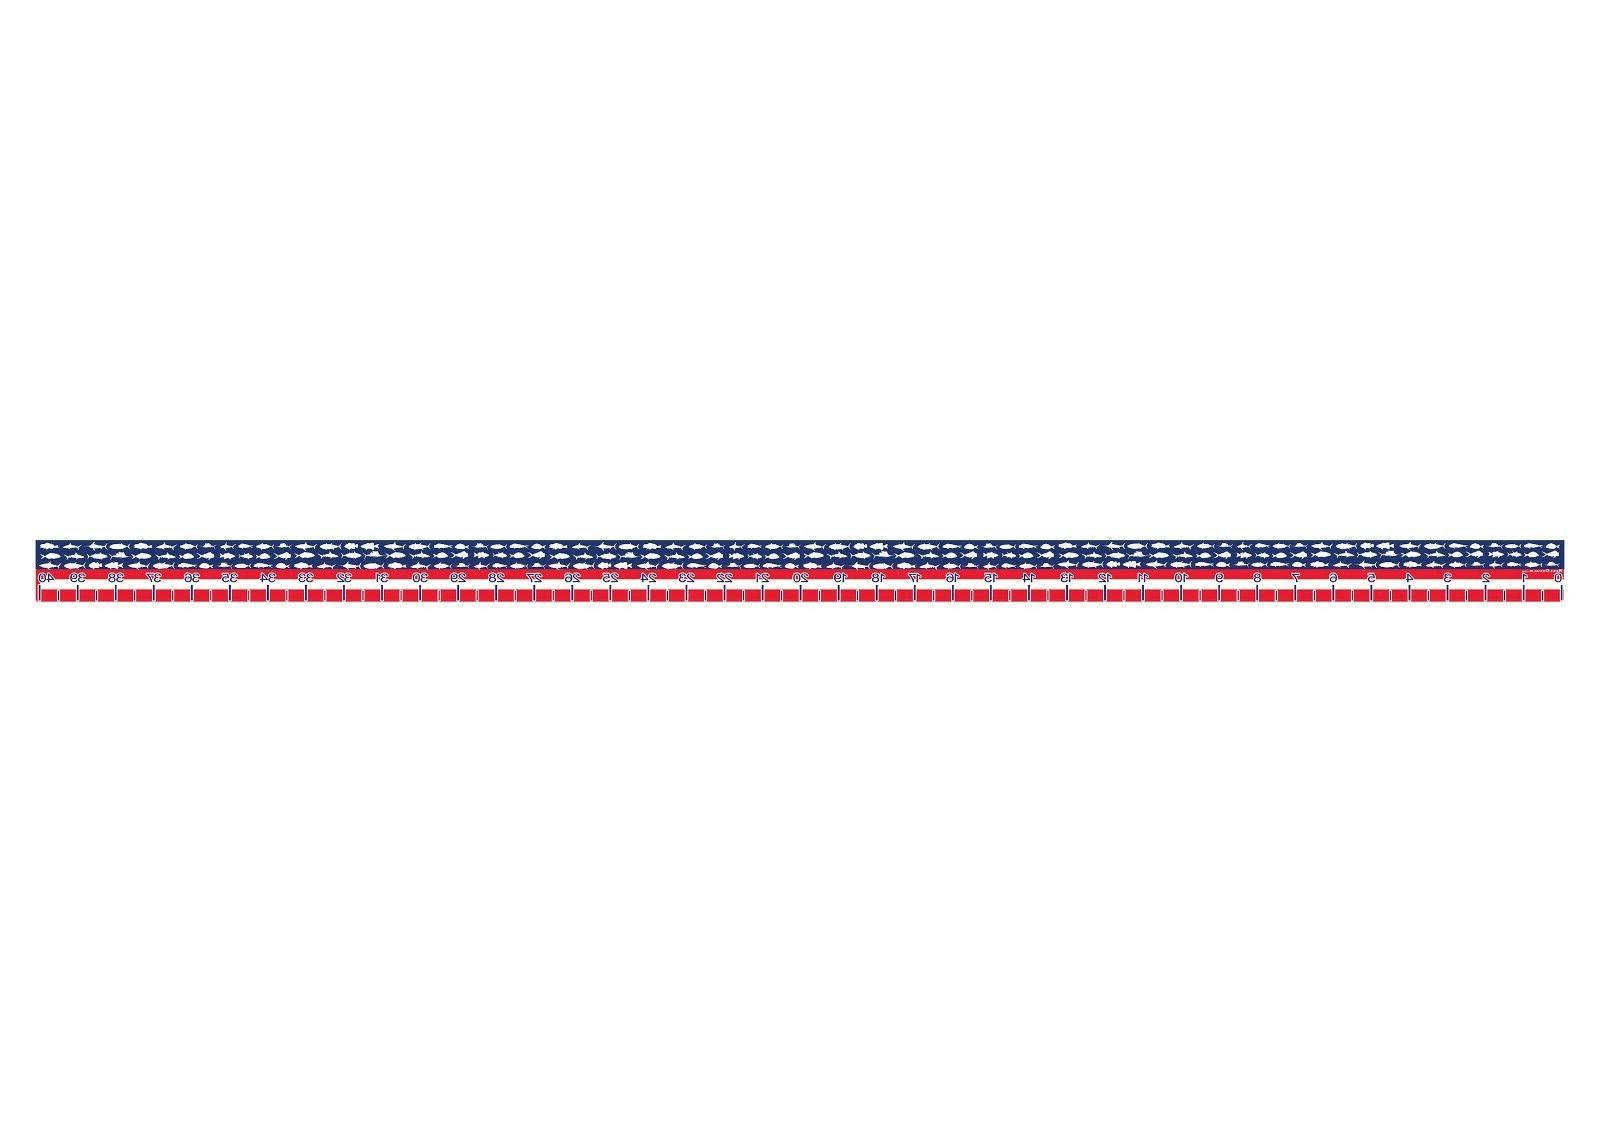 USA Fish Ruler Measuring Measure Decal US